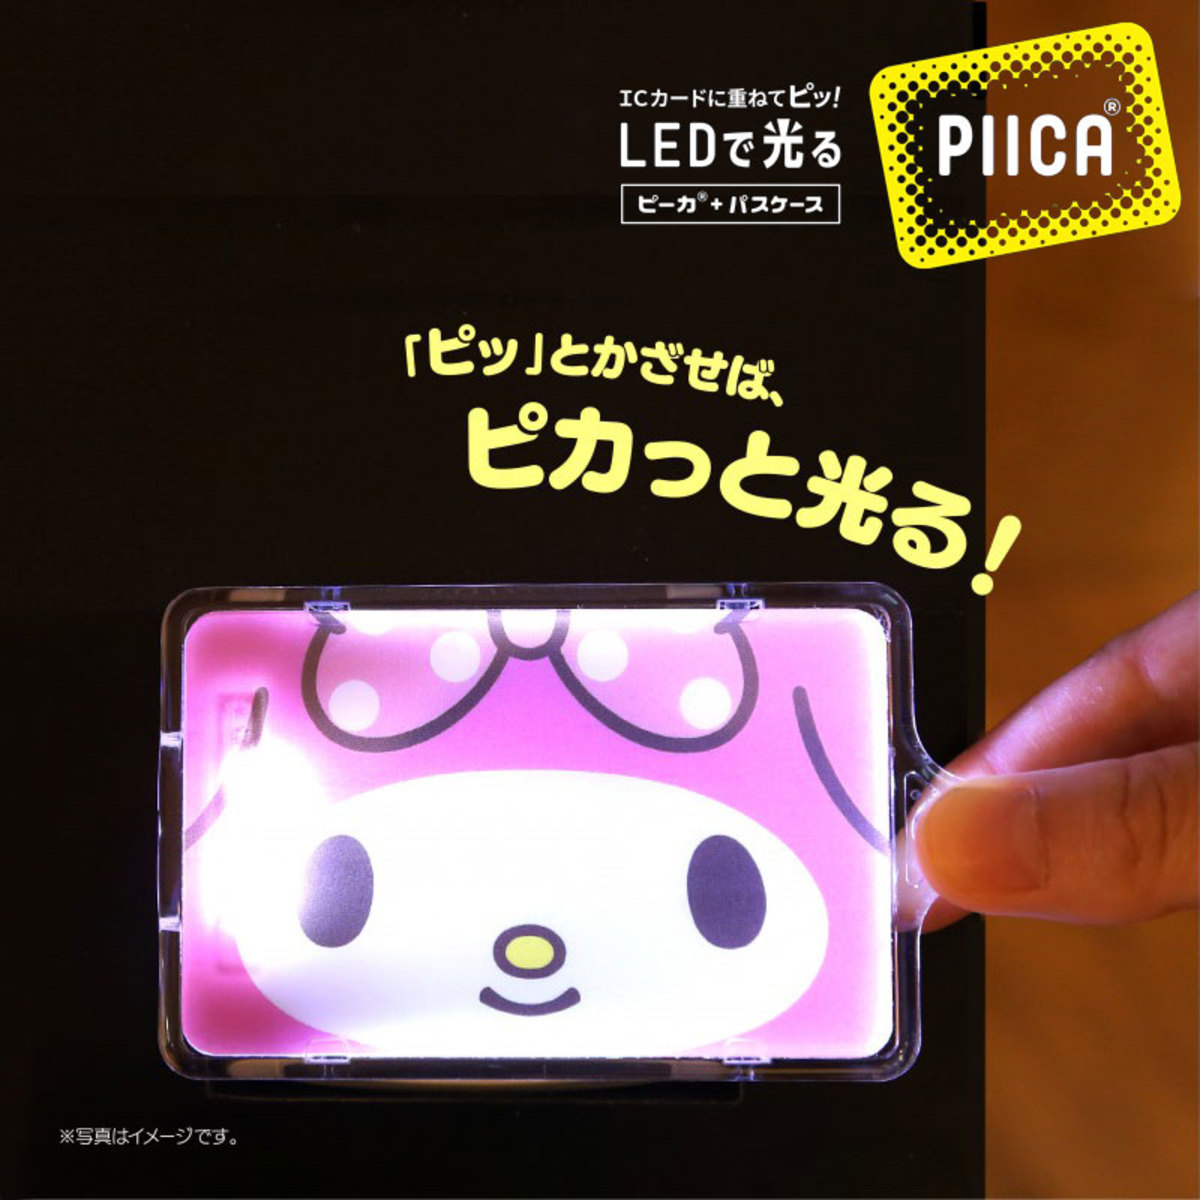 "(My Melody) Japan Sanrio ""PIICA"" LED Card Holder for Octopus/IC Card/Smart Card"